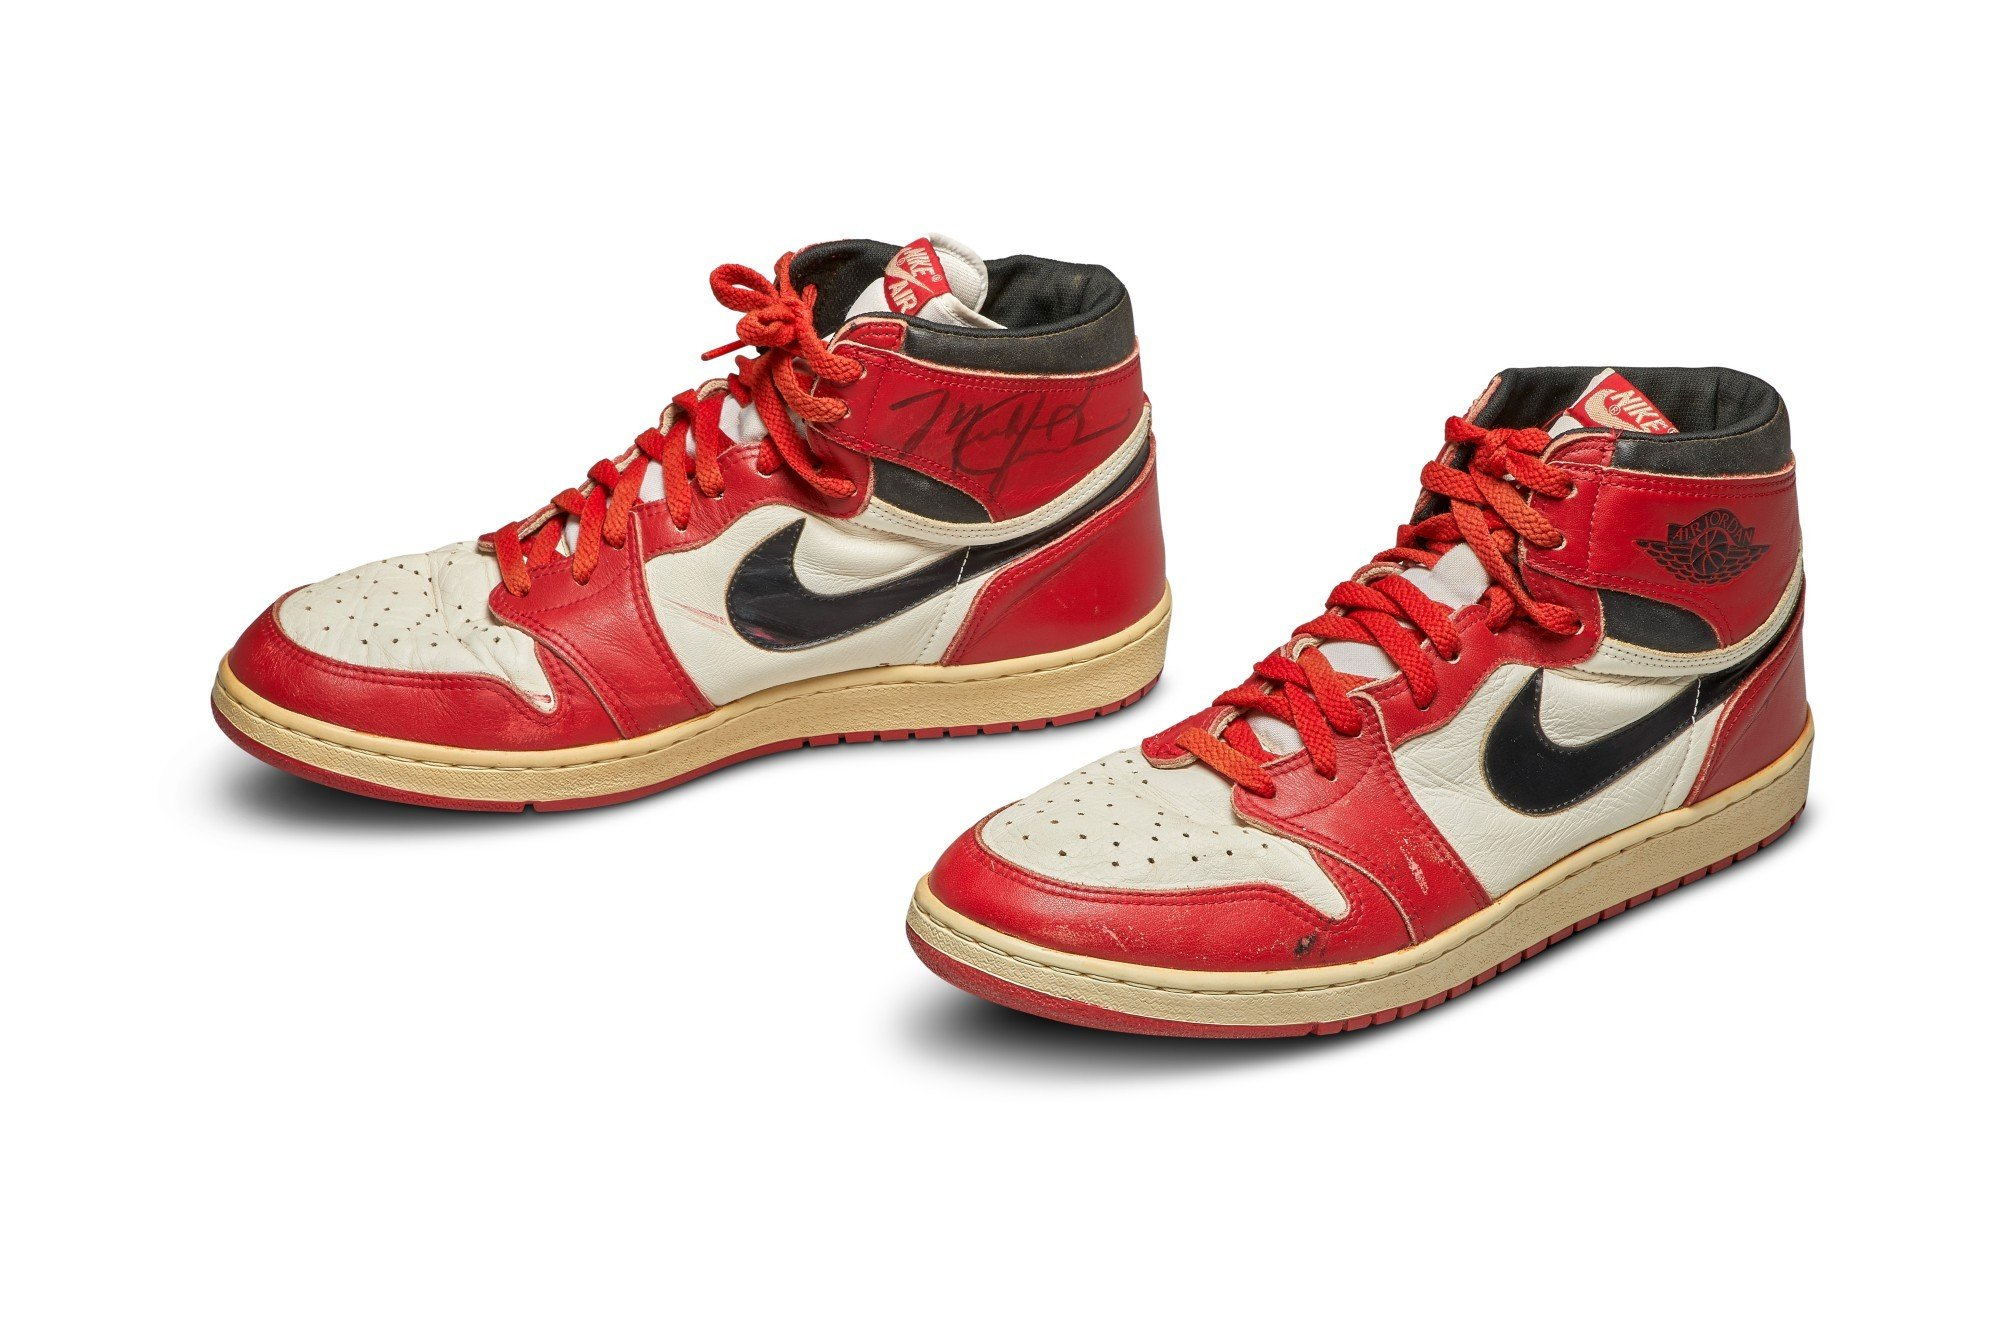 MJ's first-ever Air Jordan sneakers sold for $560,000 at Sotheby's. (IHA Photo)